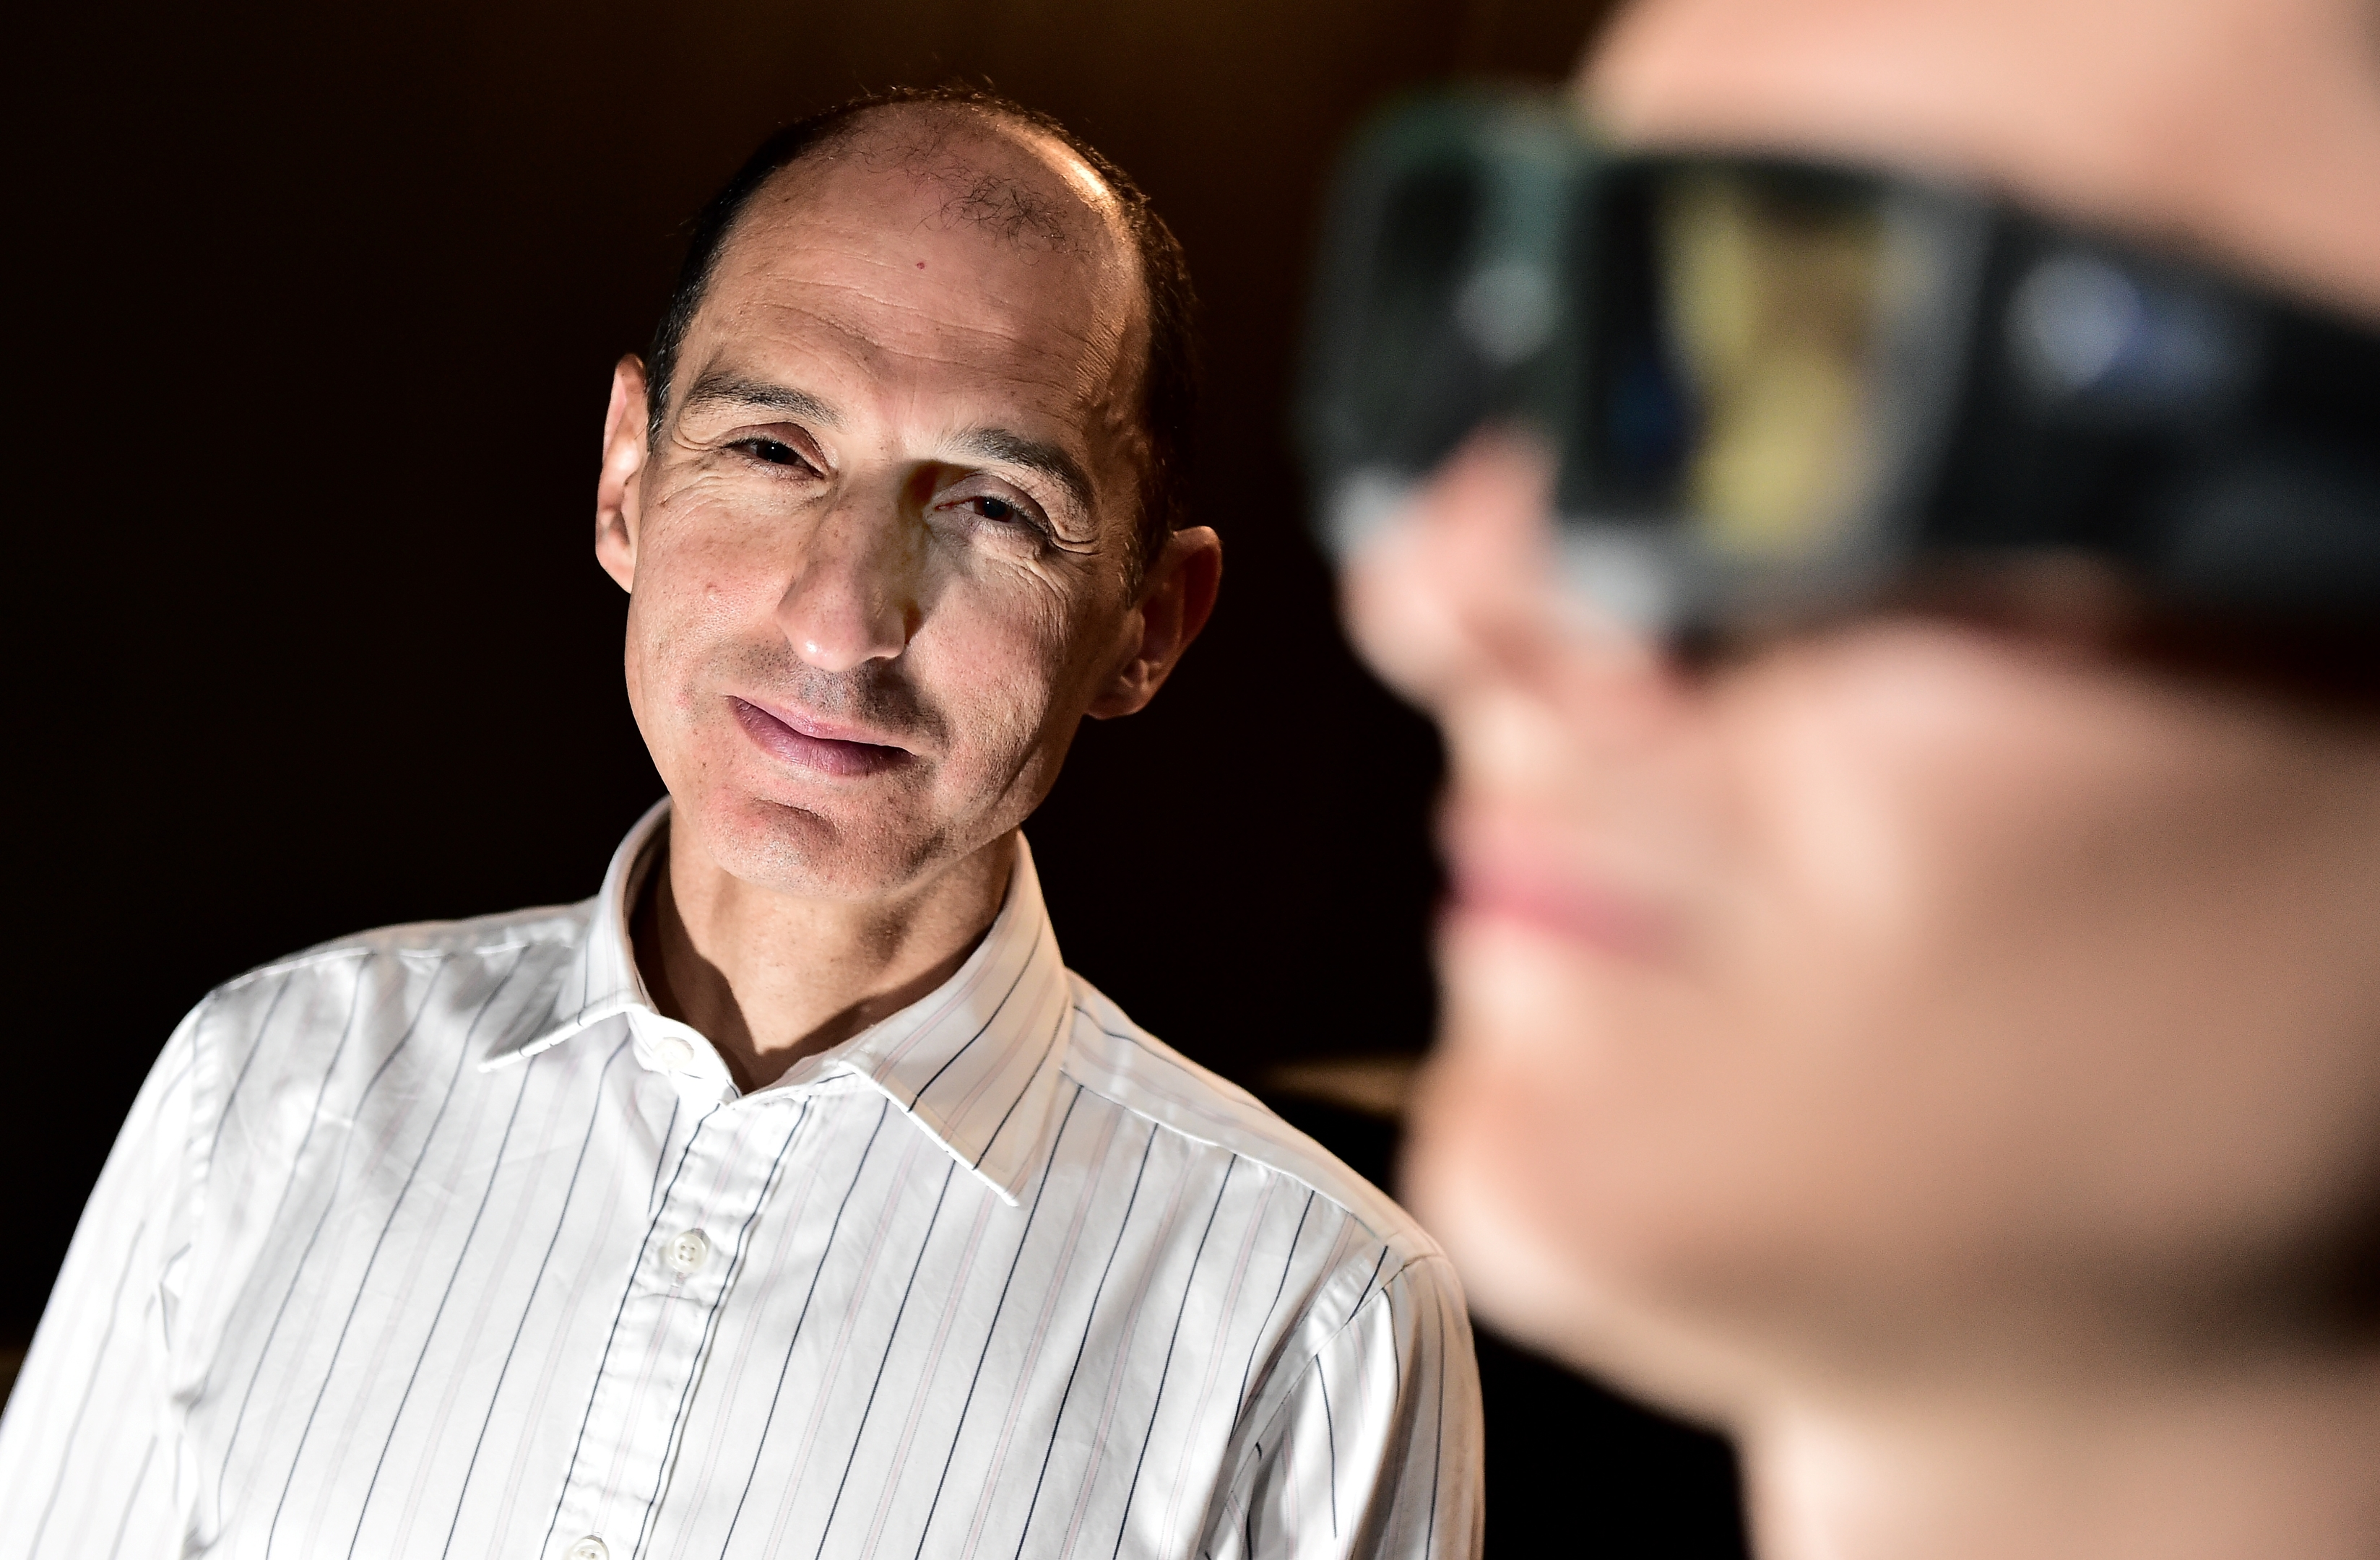 Professor Arash Sahraie  of the School of Psychology at the University of Aberdeen, who led the study into development of a new treatment for patients with blindness associated with brain injury, often caused by stroke.